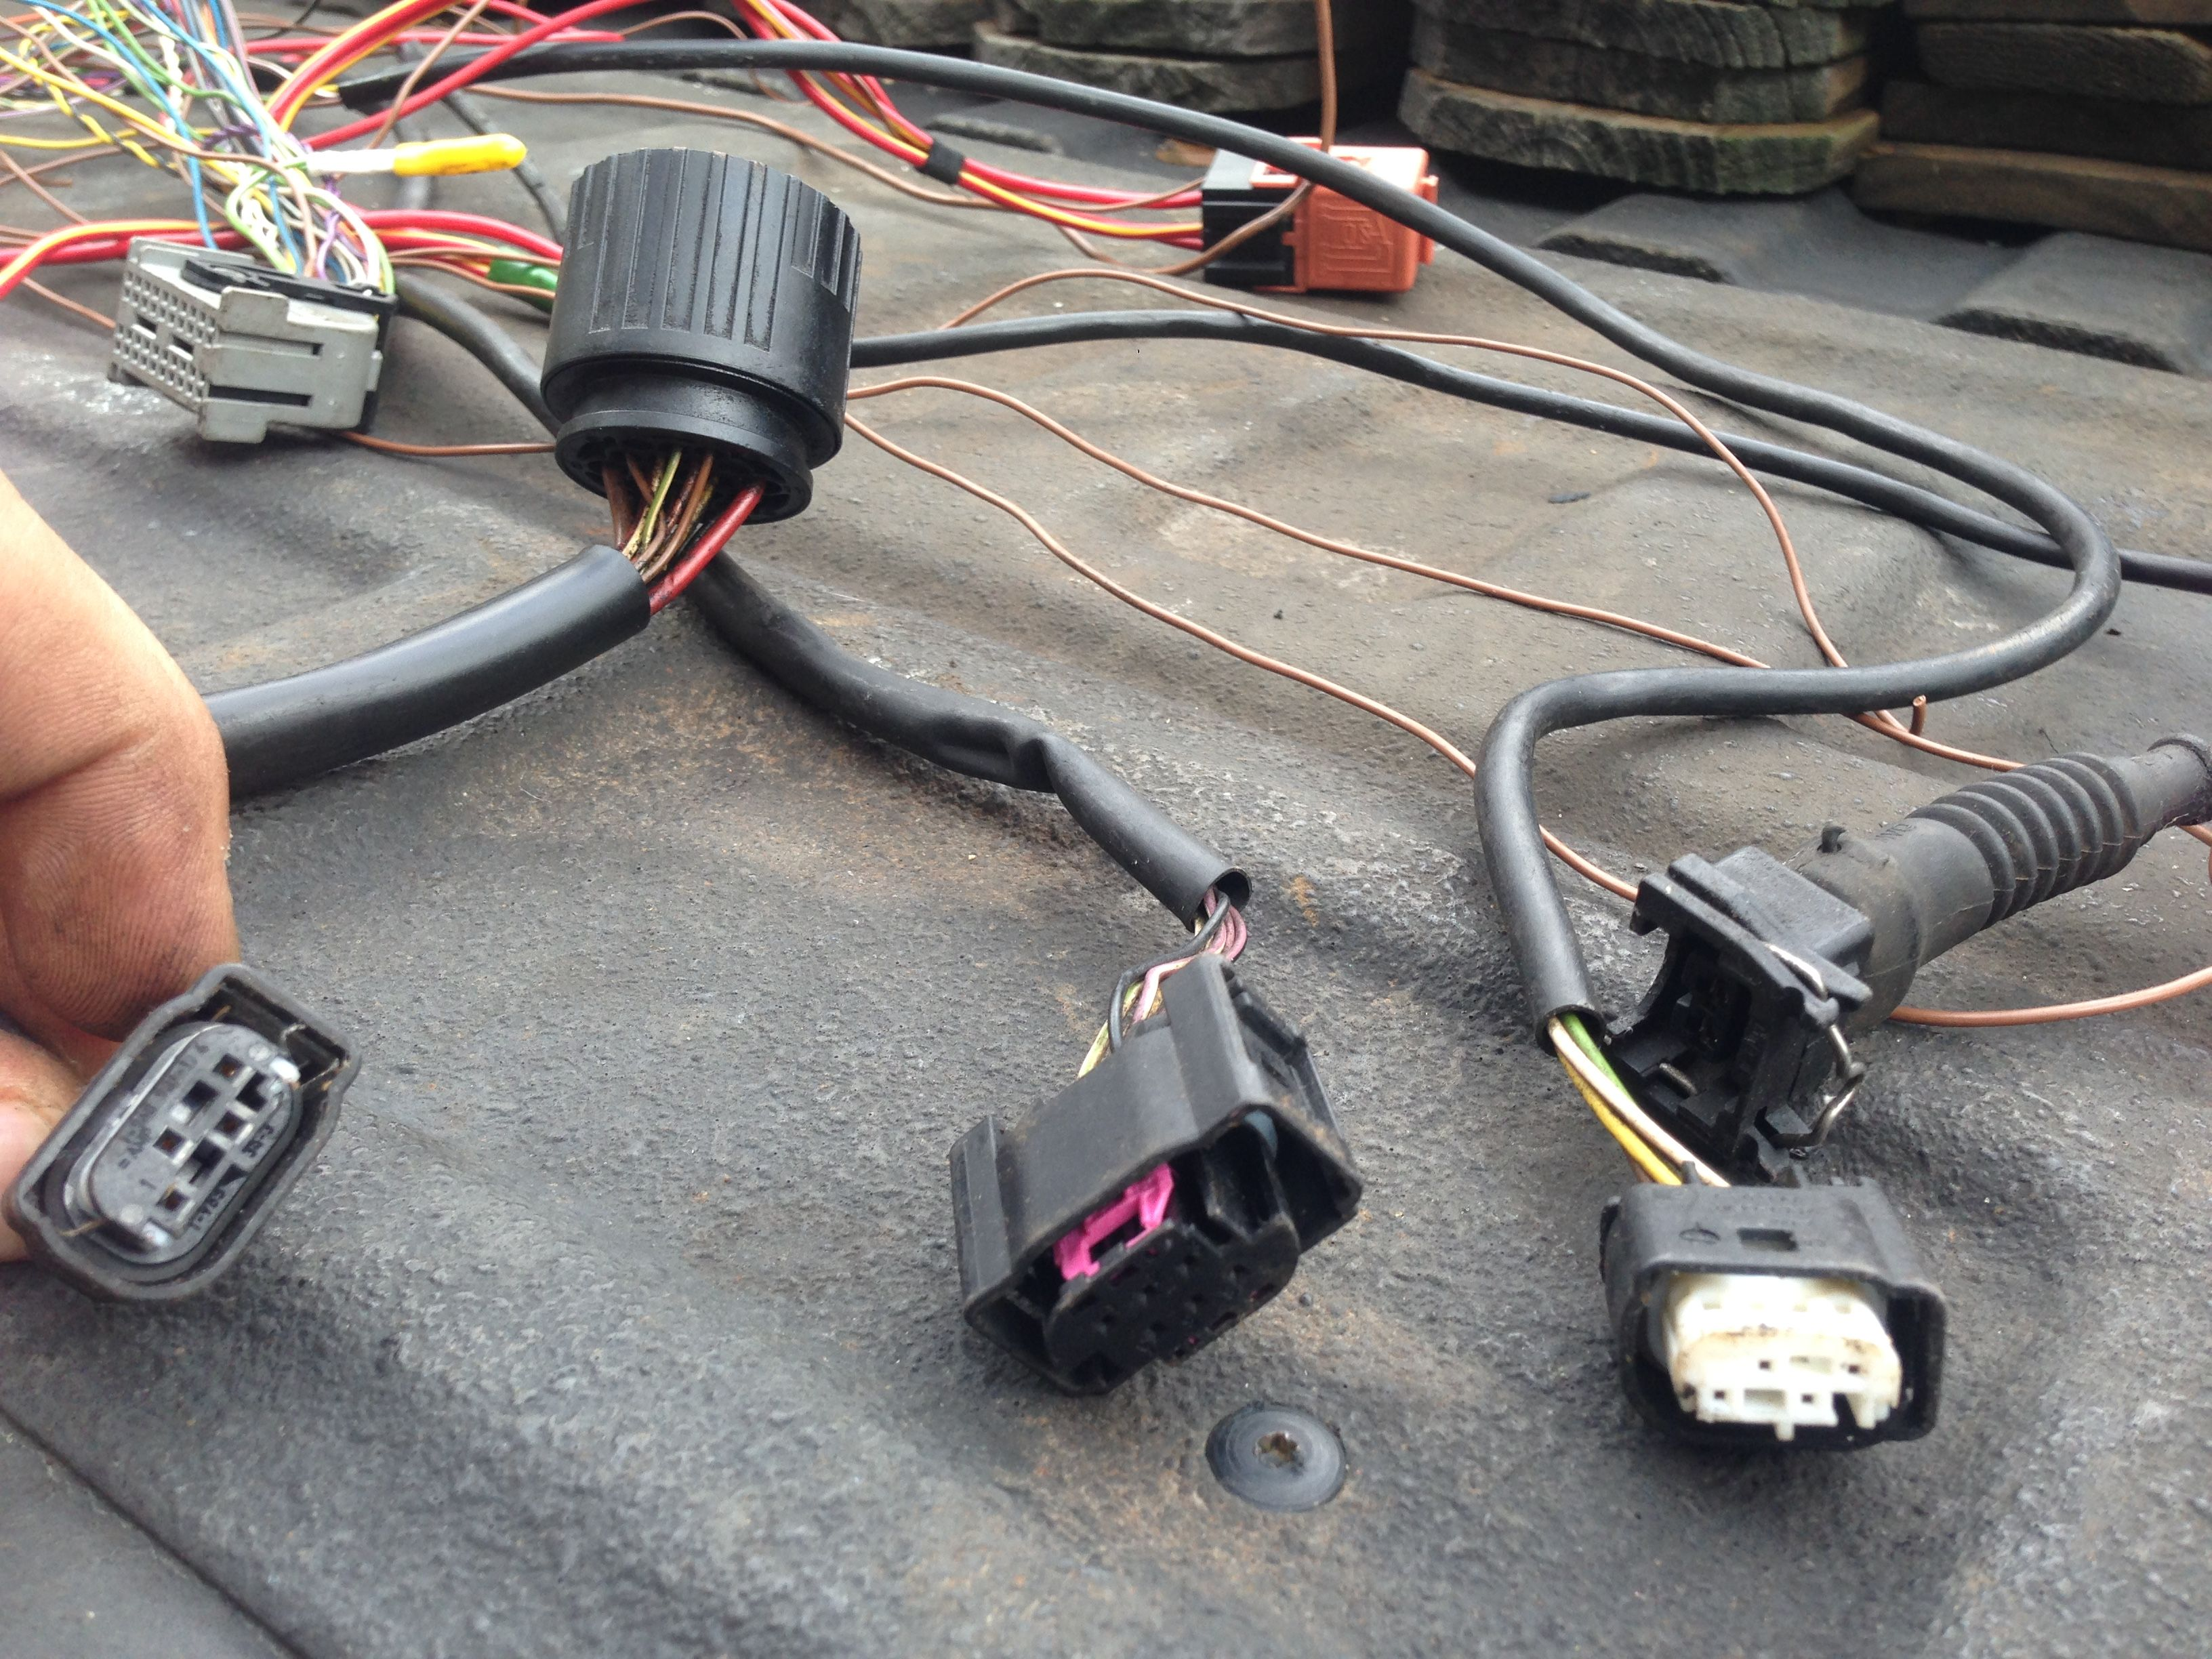 MLVL3K diy e36 s54 6 speed vs smg o2 harness can these be removed for